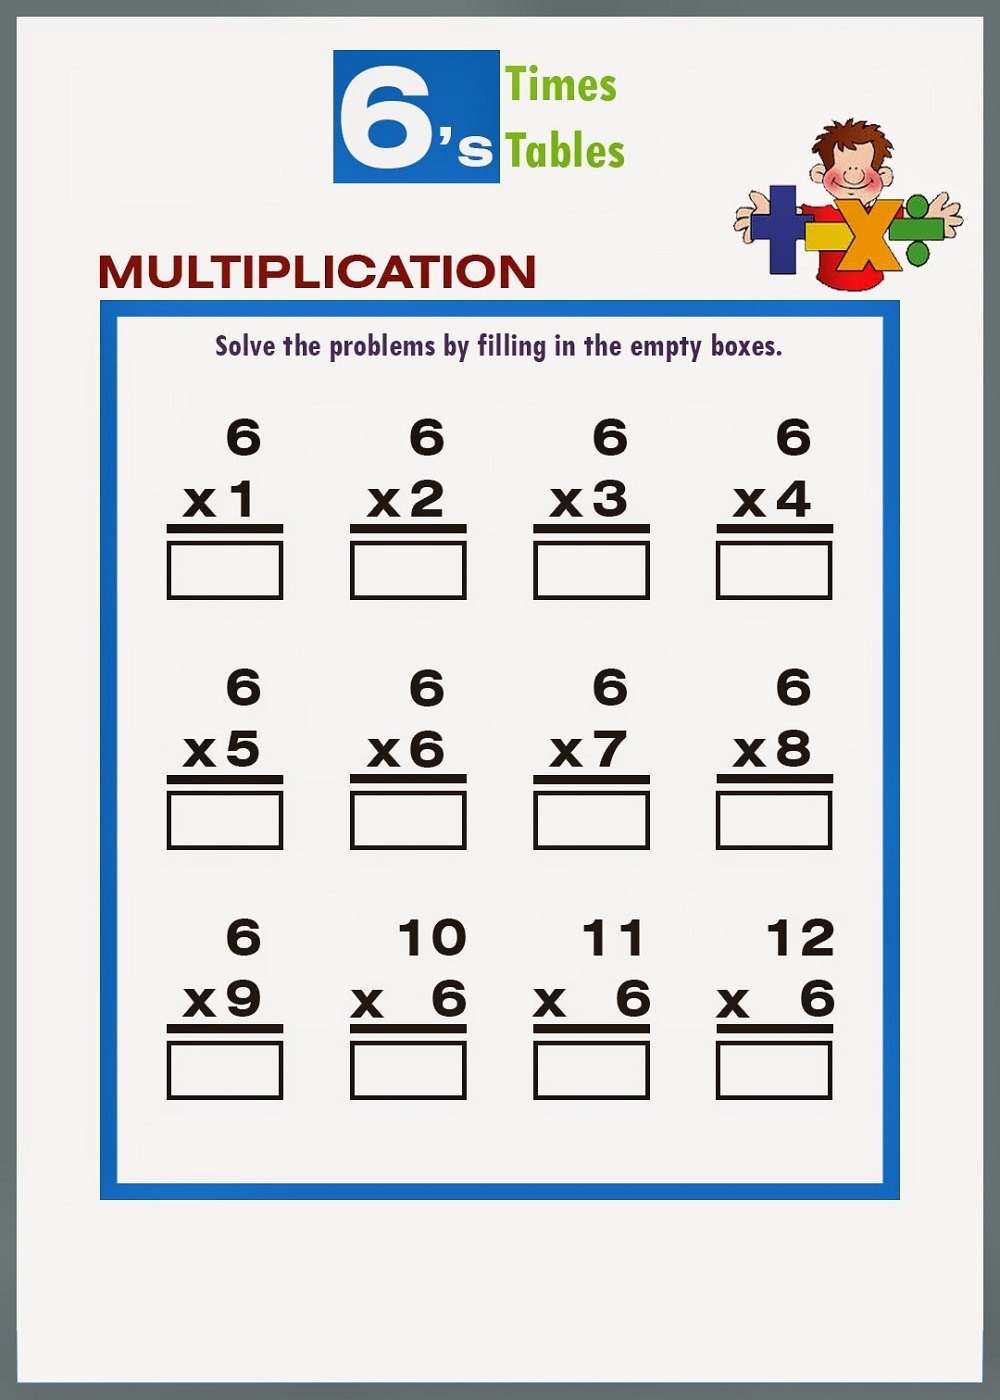 3 times table worksheet printable 100 images page 3 for 6 tables multiplication